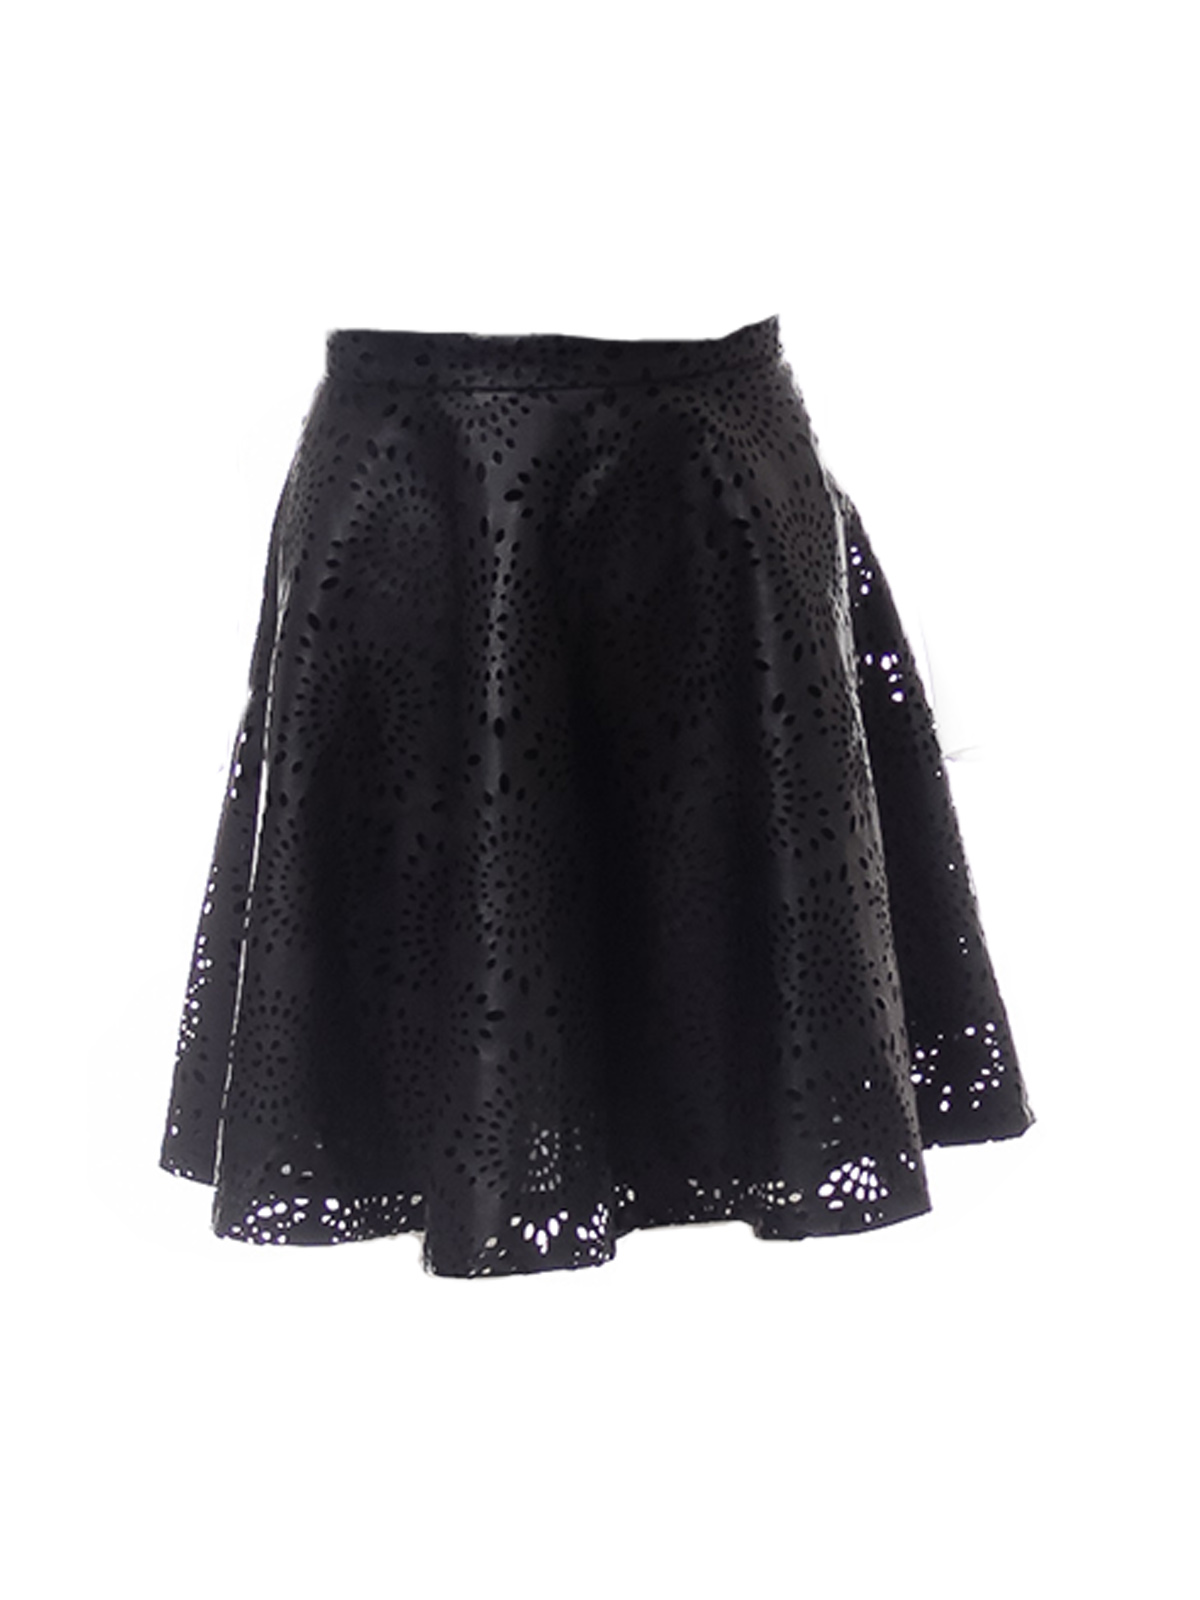 Black Faux Leather Laser Cut Flared Skirt